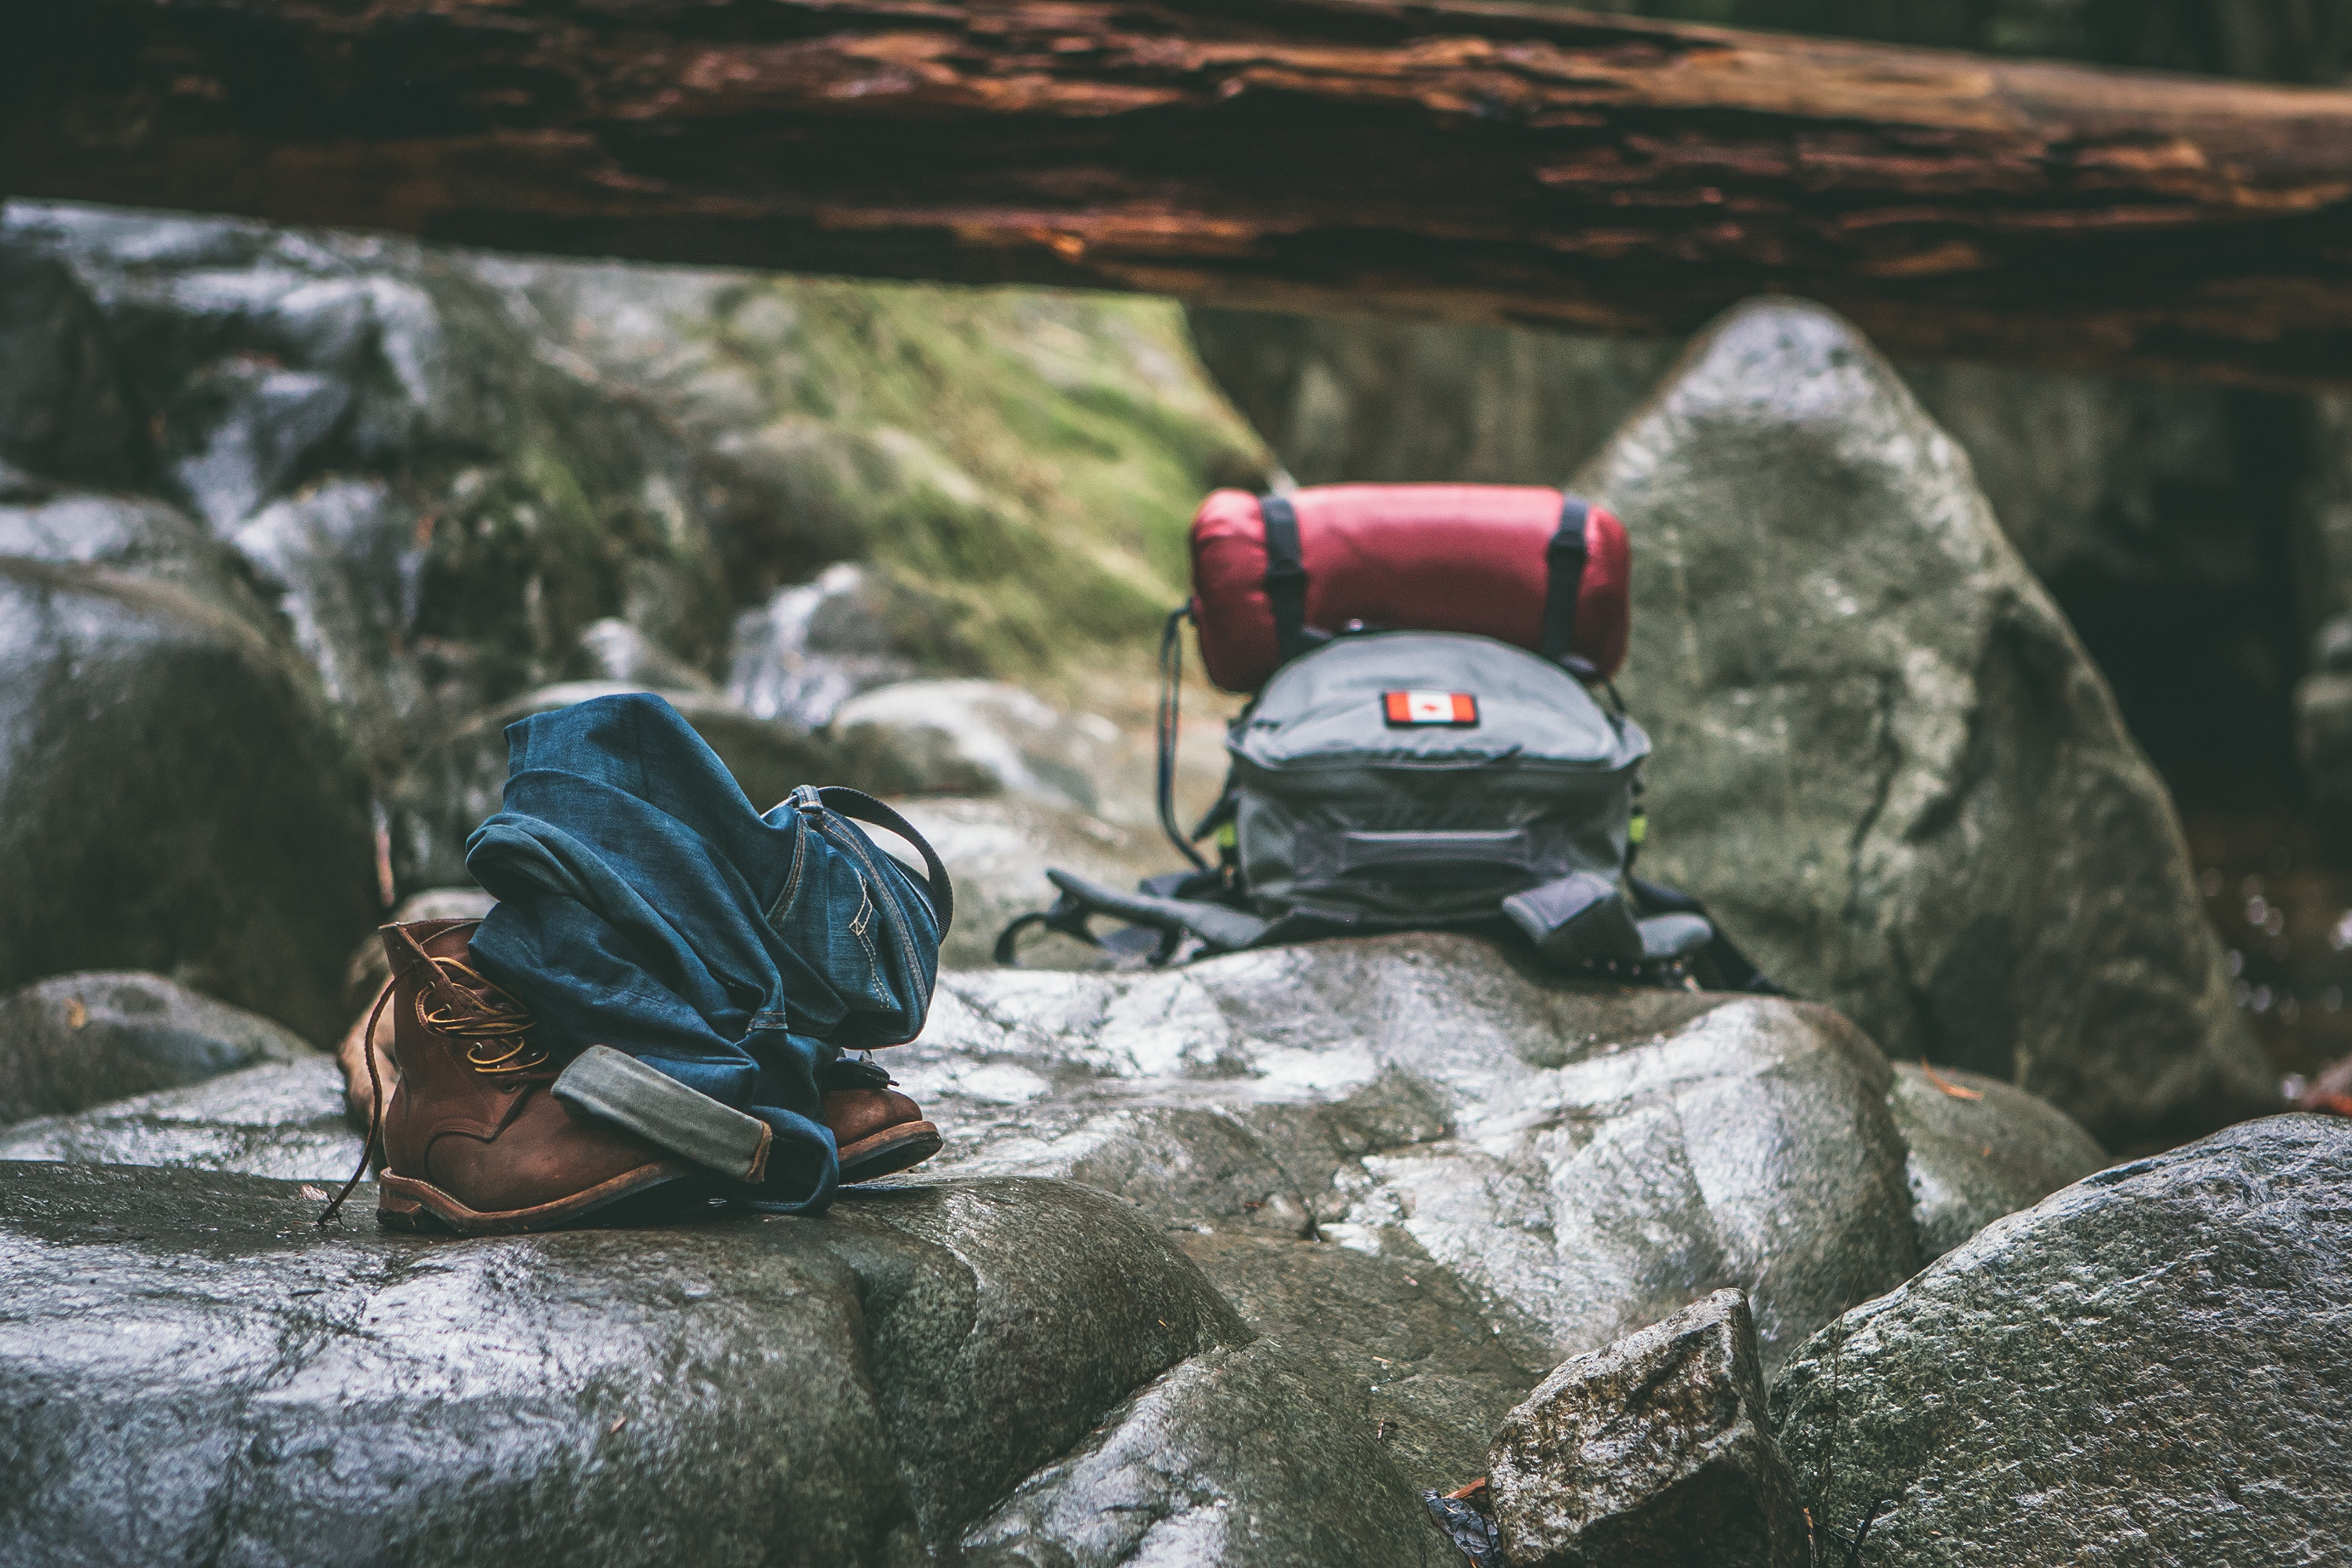 hiking backpacks on rocks